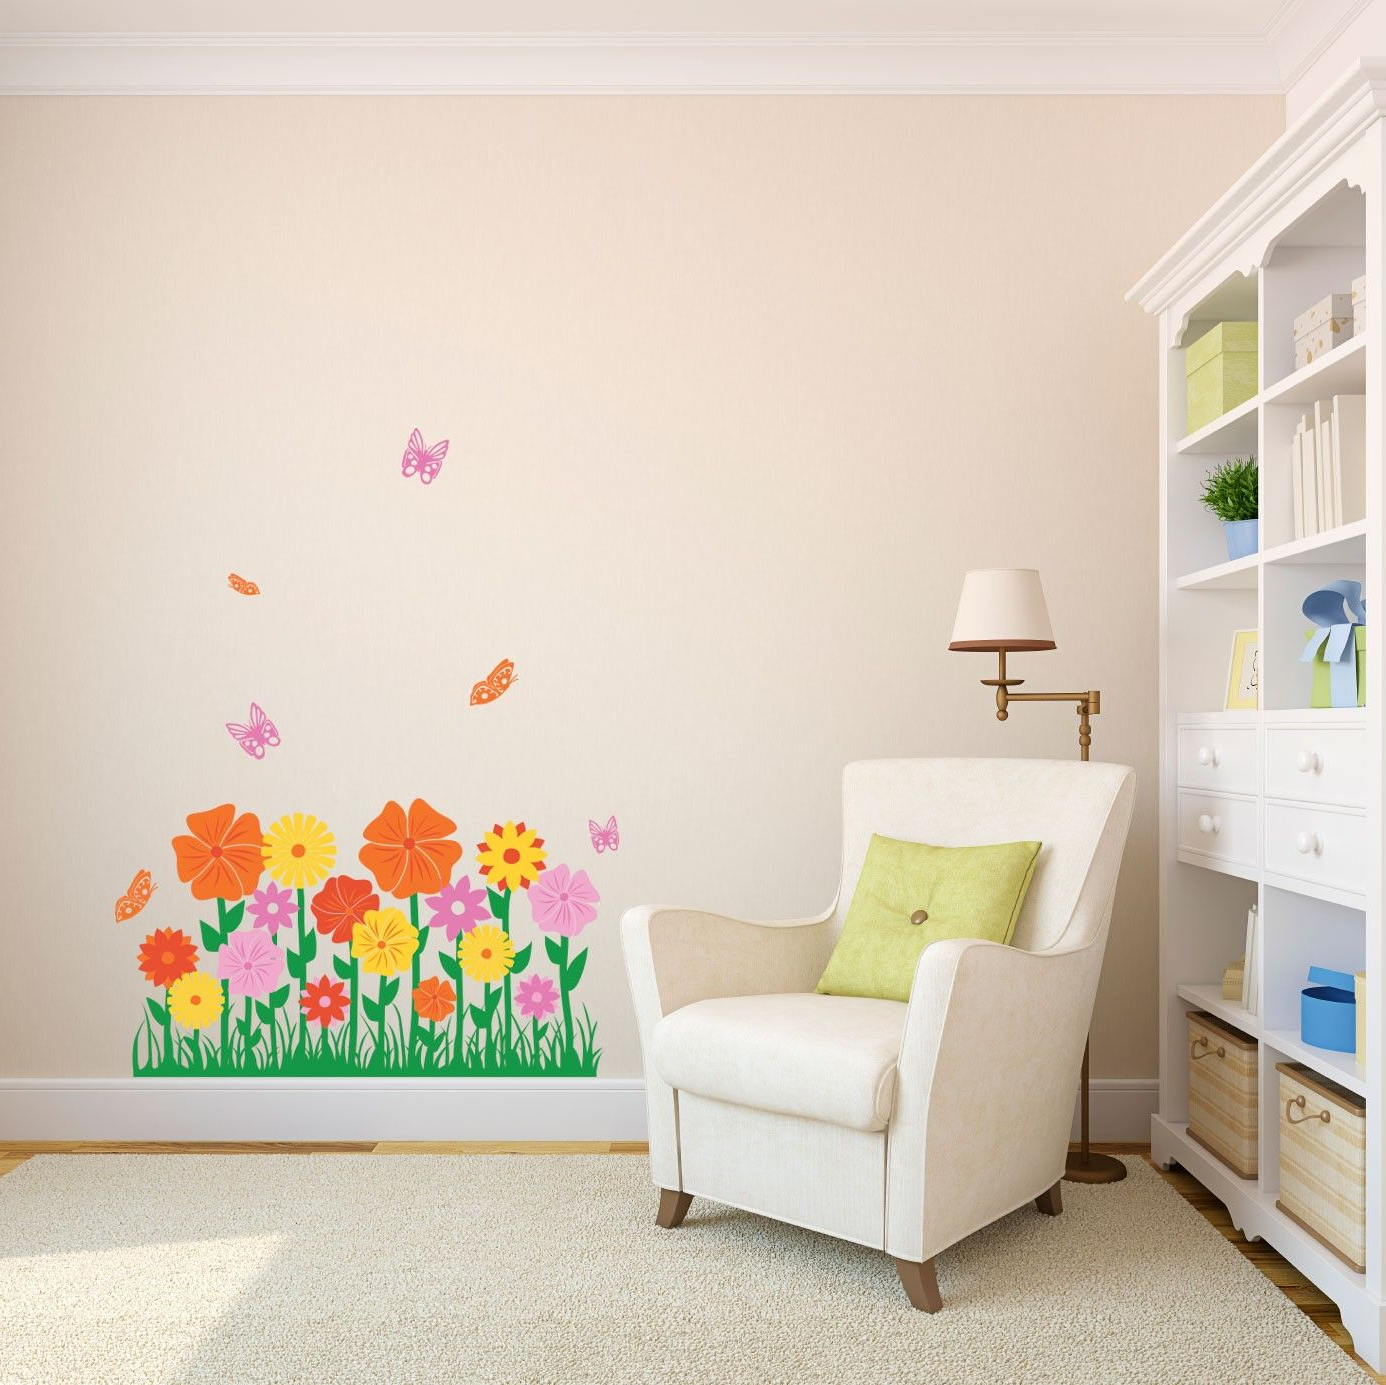 Whimsical Flower Wall Décor Inside 2020 Whimsical Flower Hedge – Vinyl Wall Art Decal For Homes (View 15 of 20)